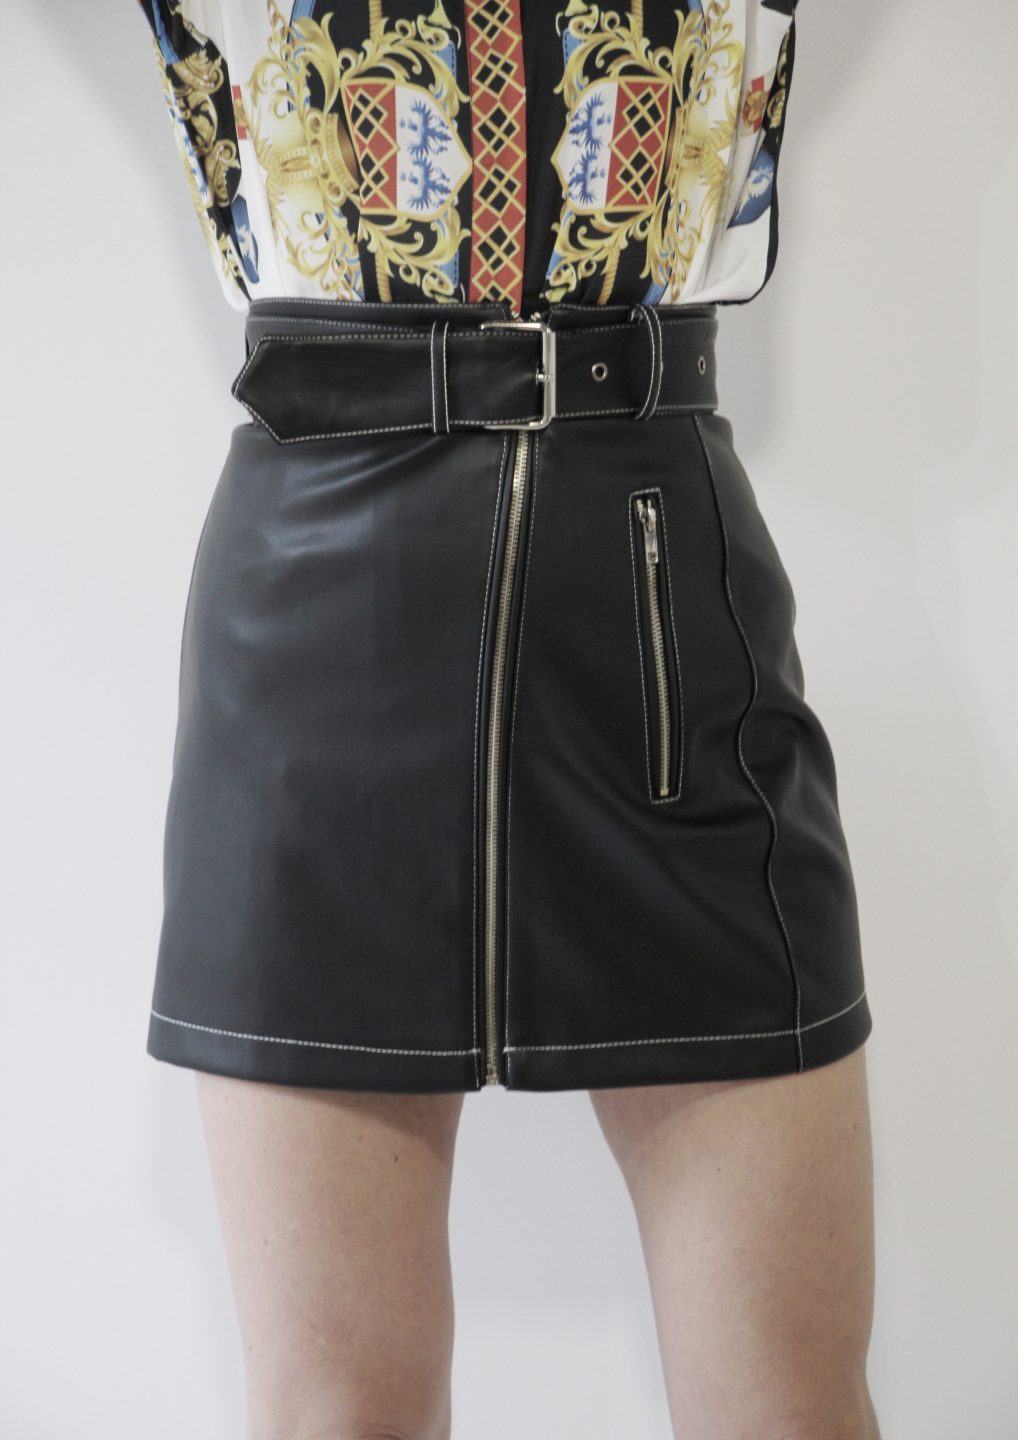 34360fb9b2 The Wild Ones Leather Skirt - DayDreamers